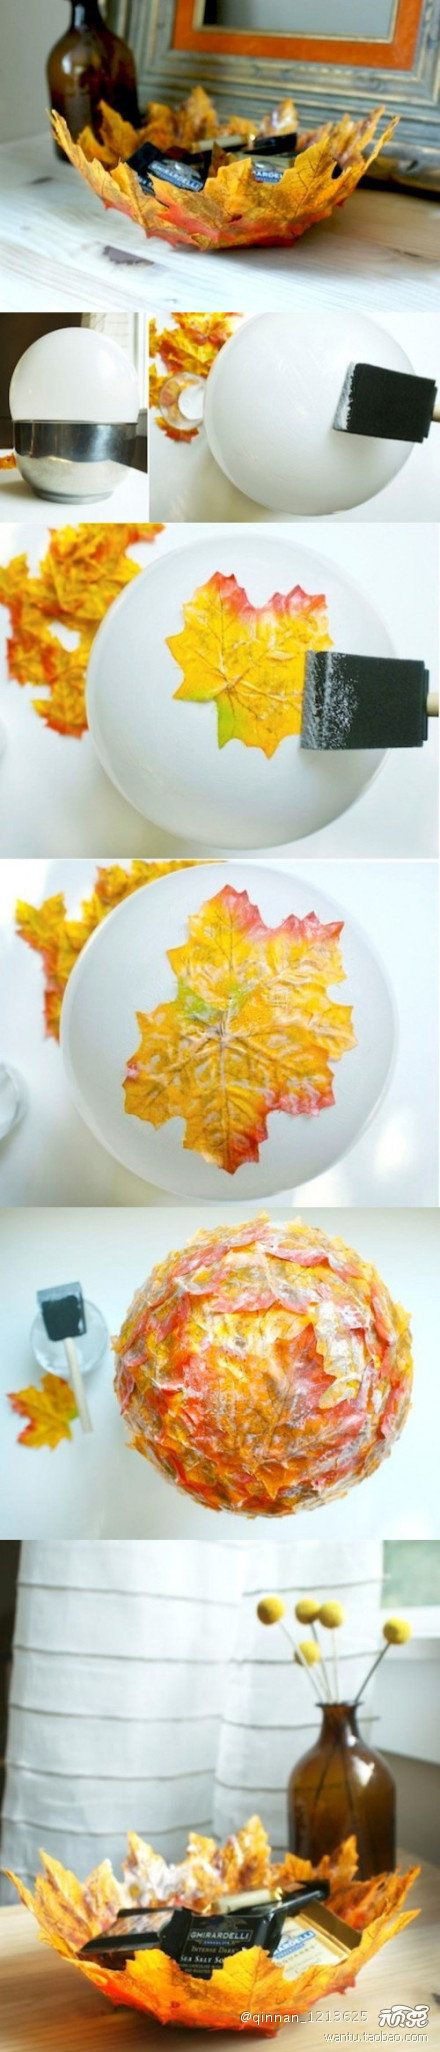 DIY Leaf Bowl autumn